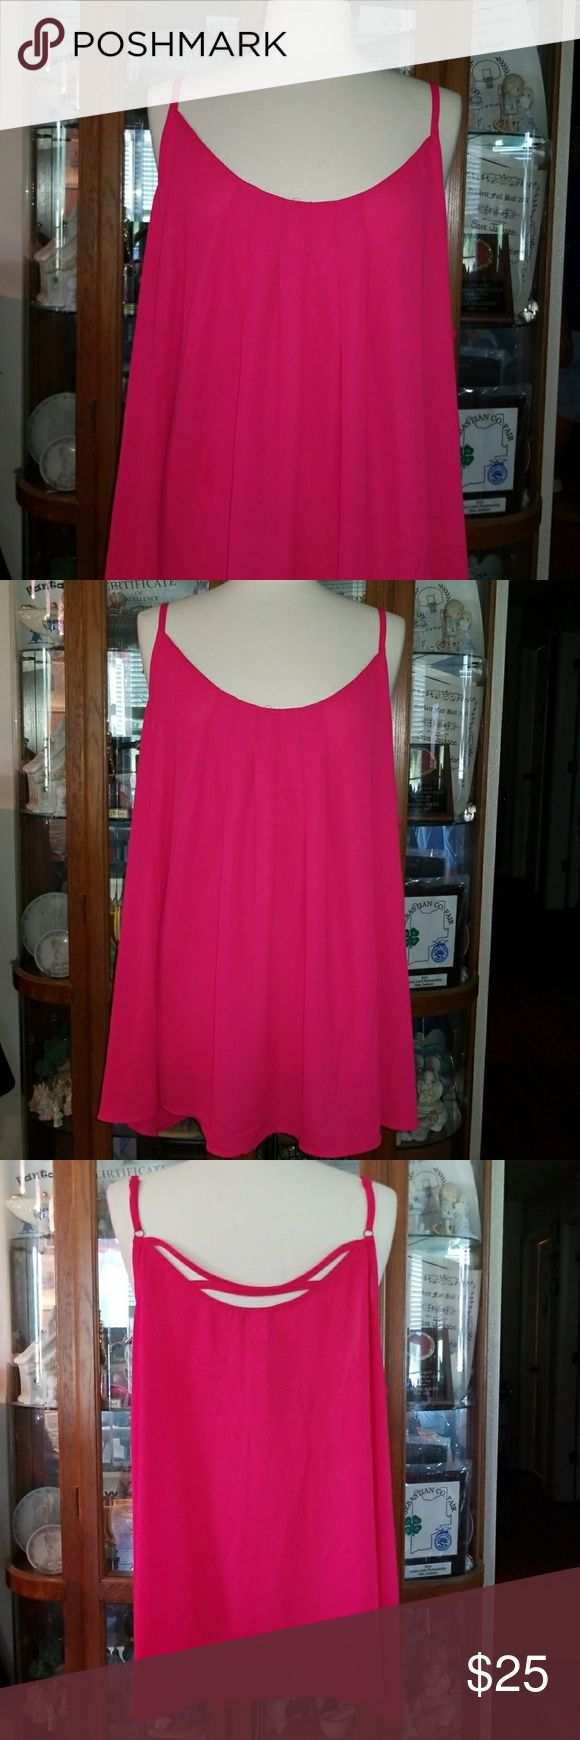 BNWT PLUS SIZE SHEER TANK!!! BNWT plus size SHEER  hot pink tank from Torrid!!!  Has criss cross straps in back that are adjustable!!!  Keep you cool and comfy this summer!!!  Any questions feel free to ask! I love offers and bundles and have a 20% discount to bundles of 3 items or more!! God Bless!! 🤗💖 torrid Tops Tank Tops